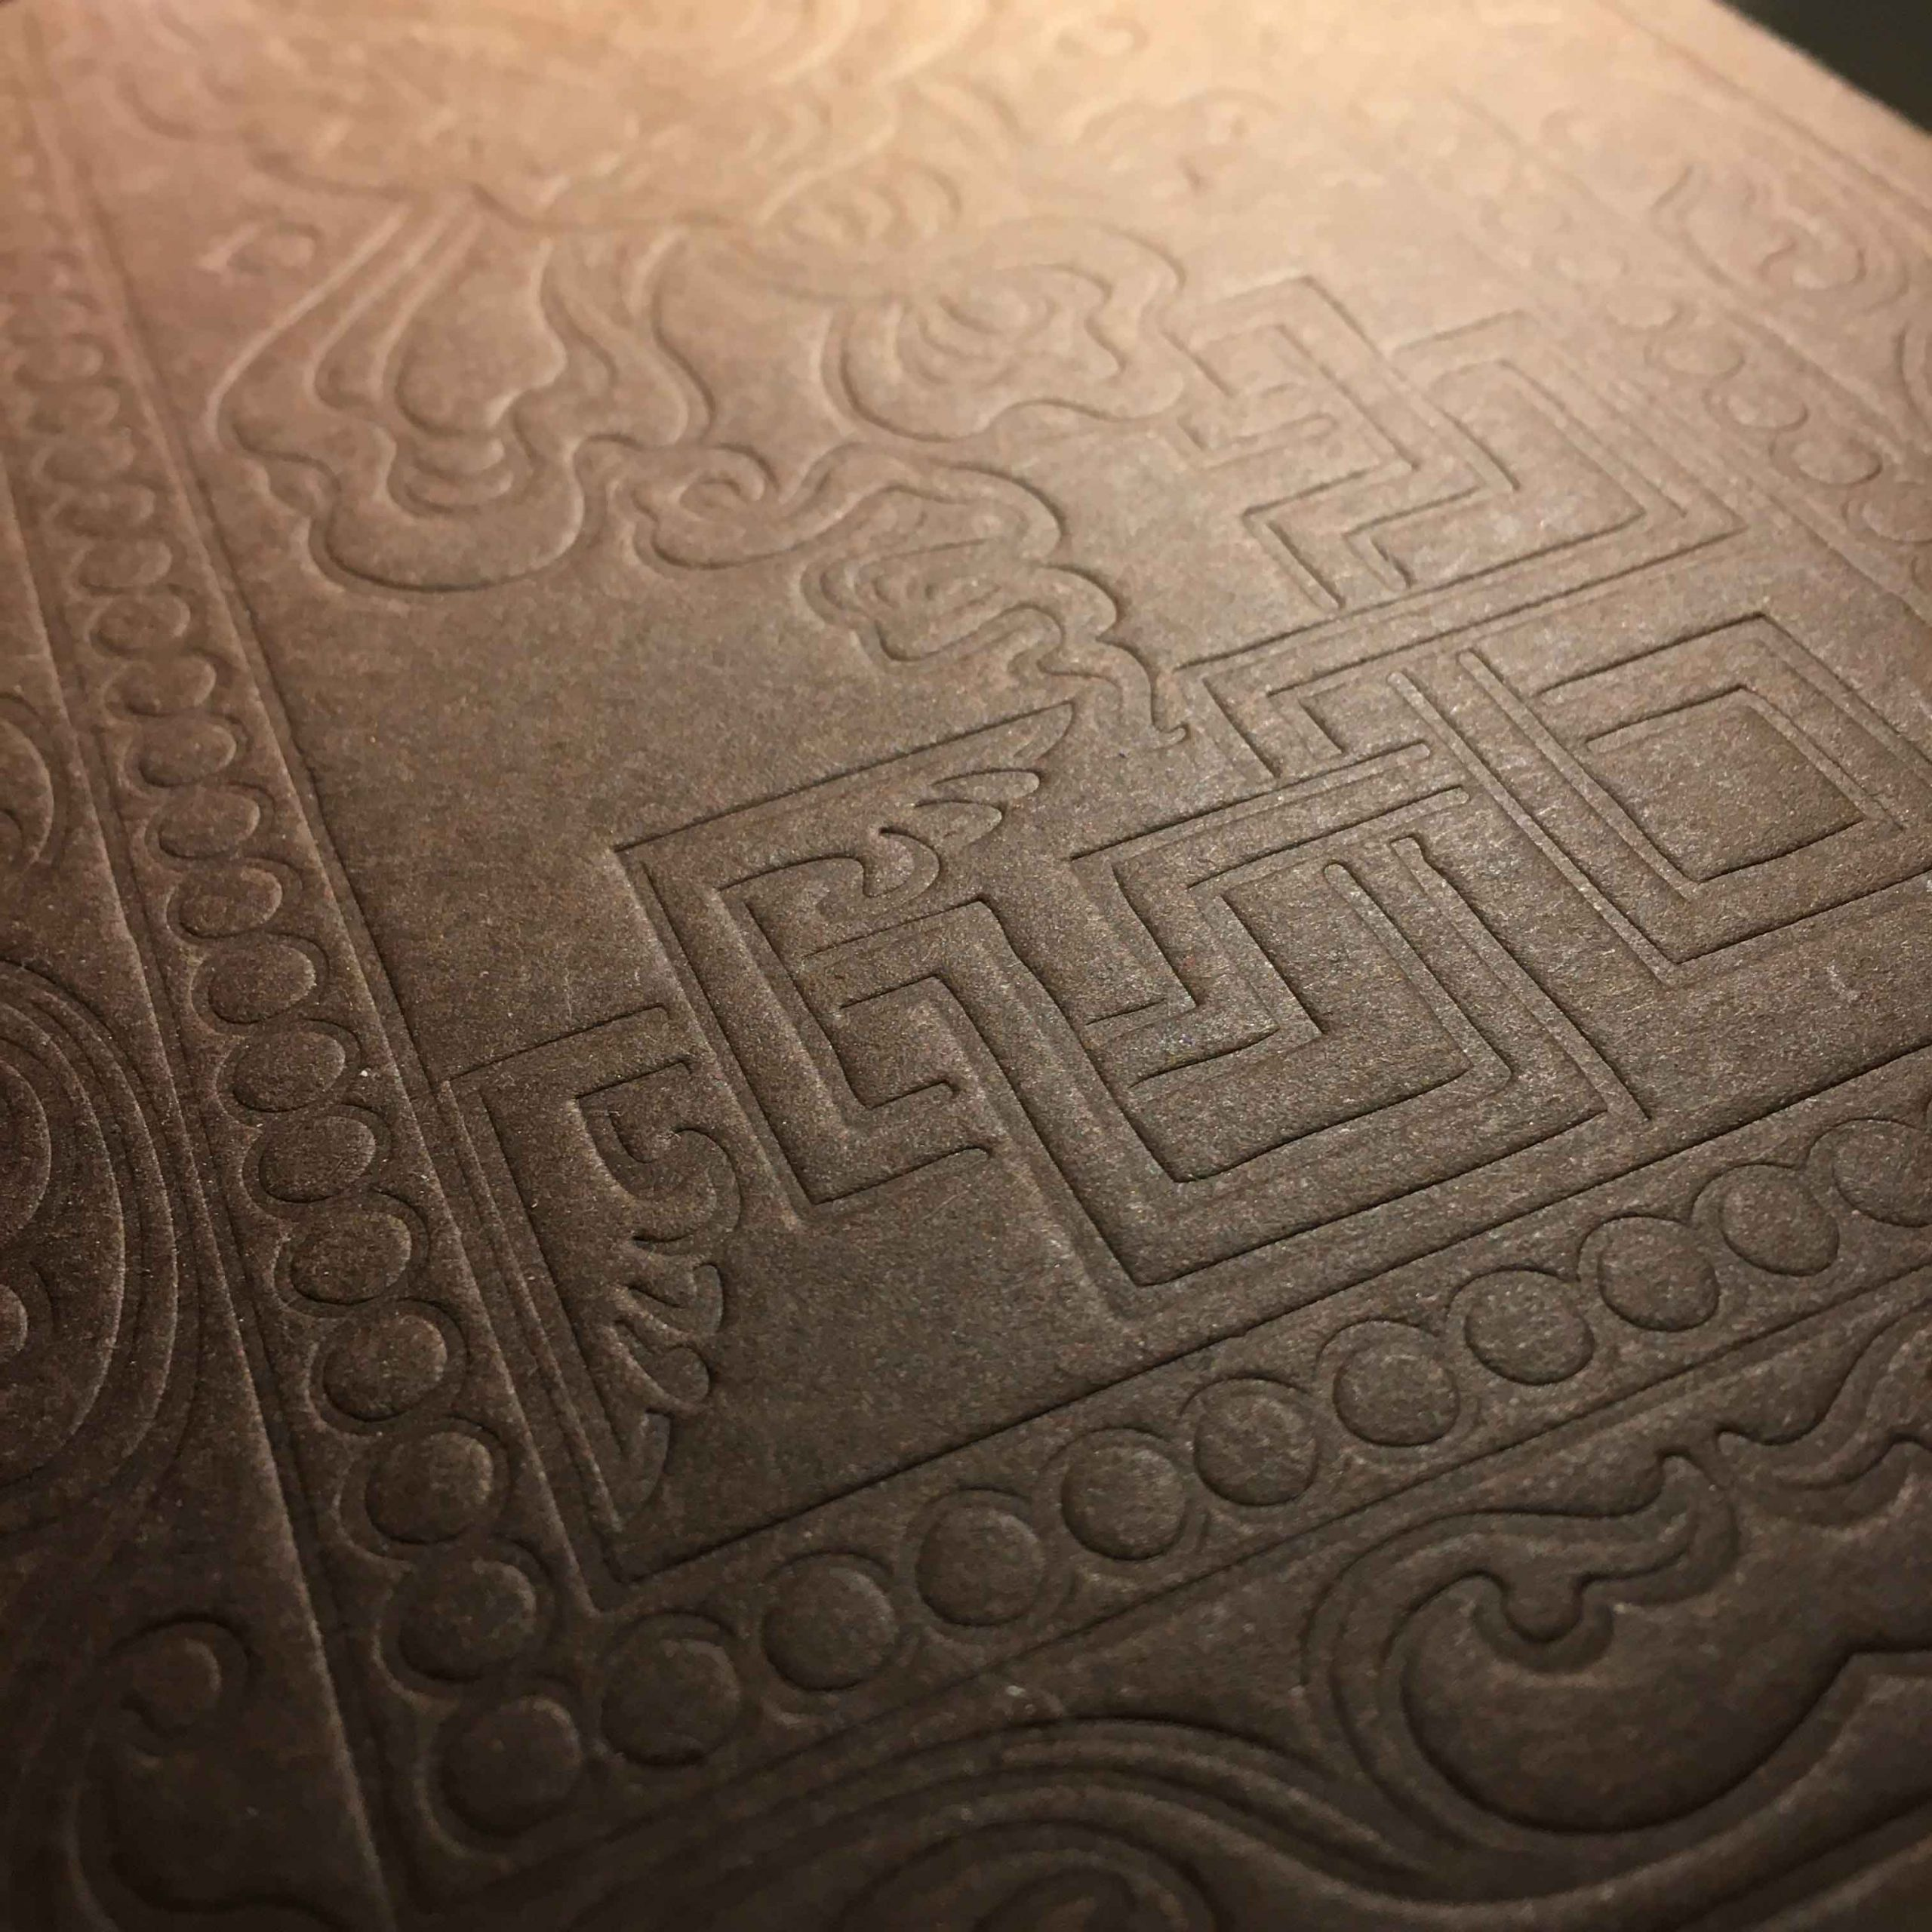 Playstation Uncharted 2 Press Pack Embossing Detail